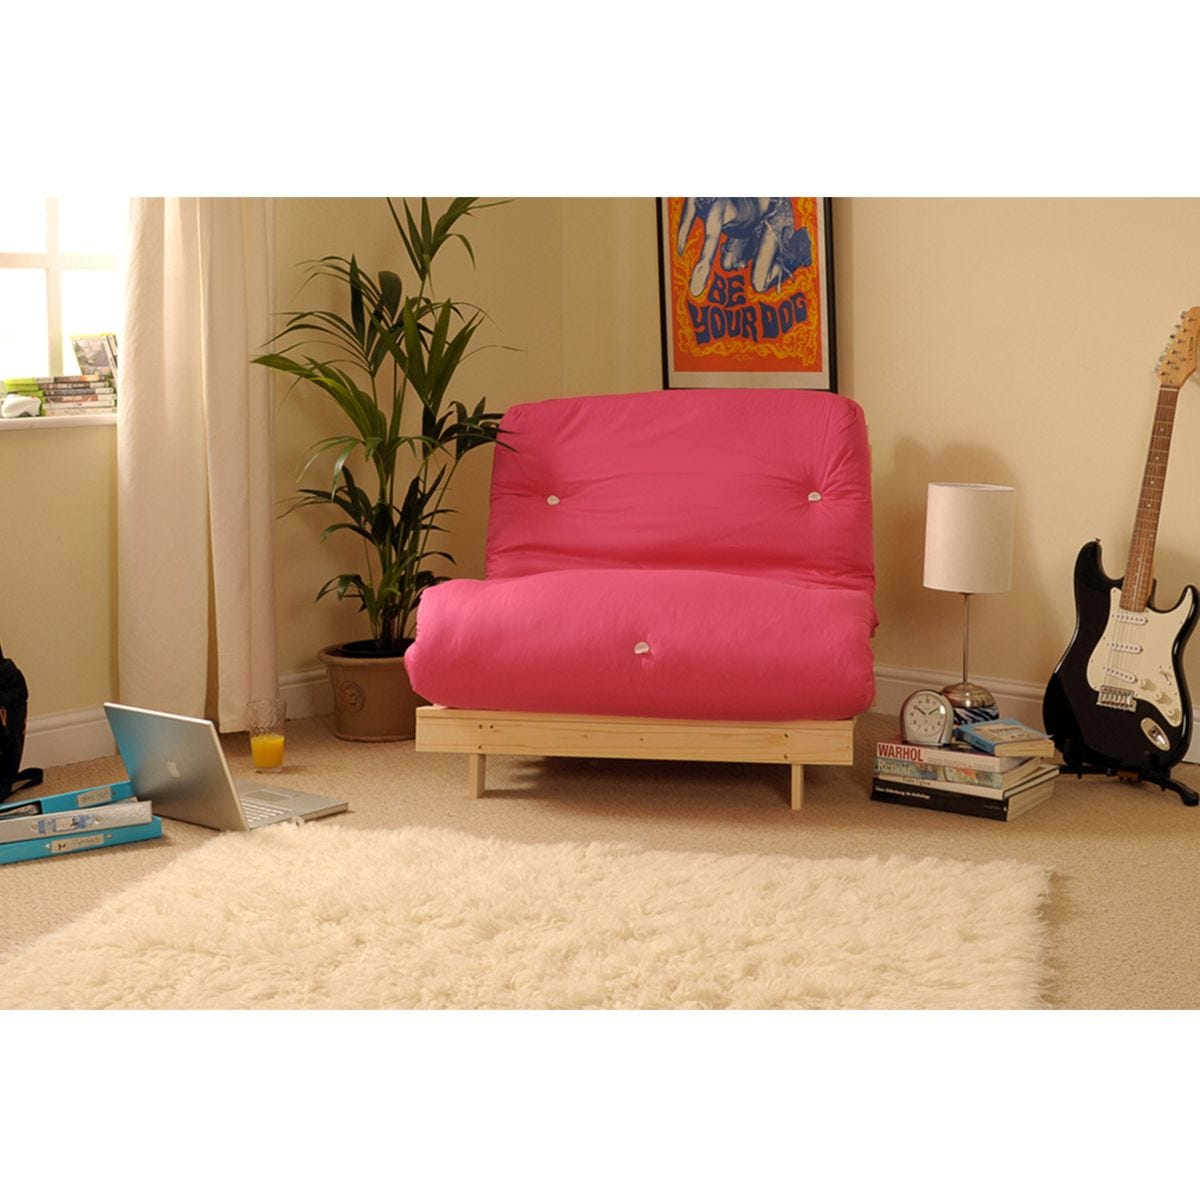 Albury Pink Sofa Bed With Tufted Mattress - Single